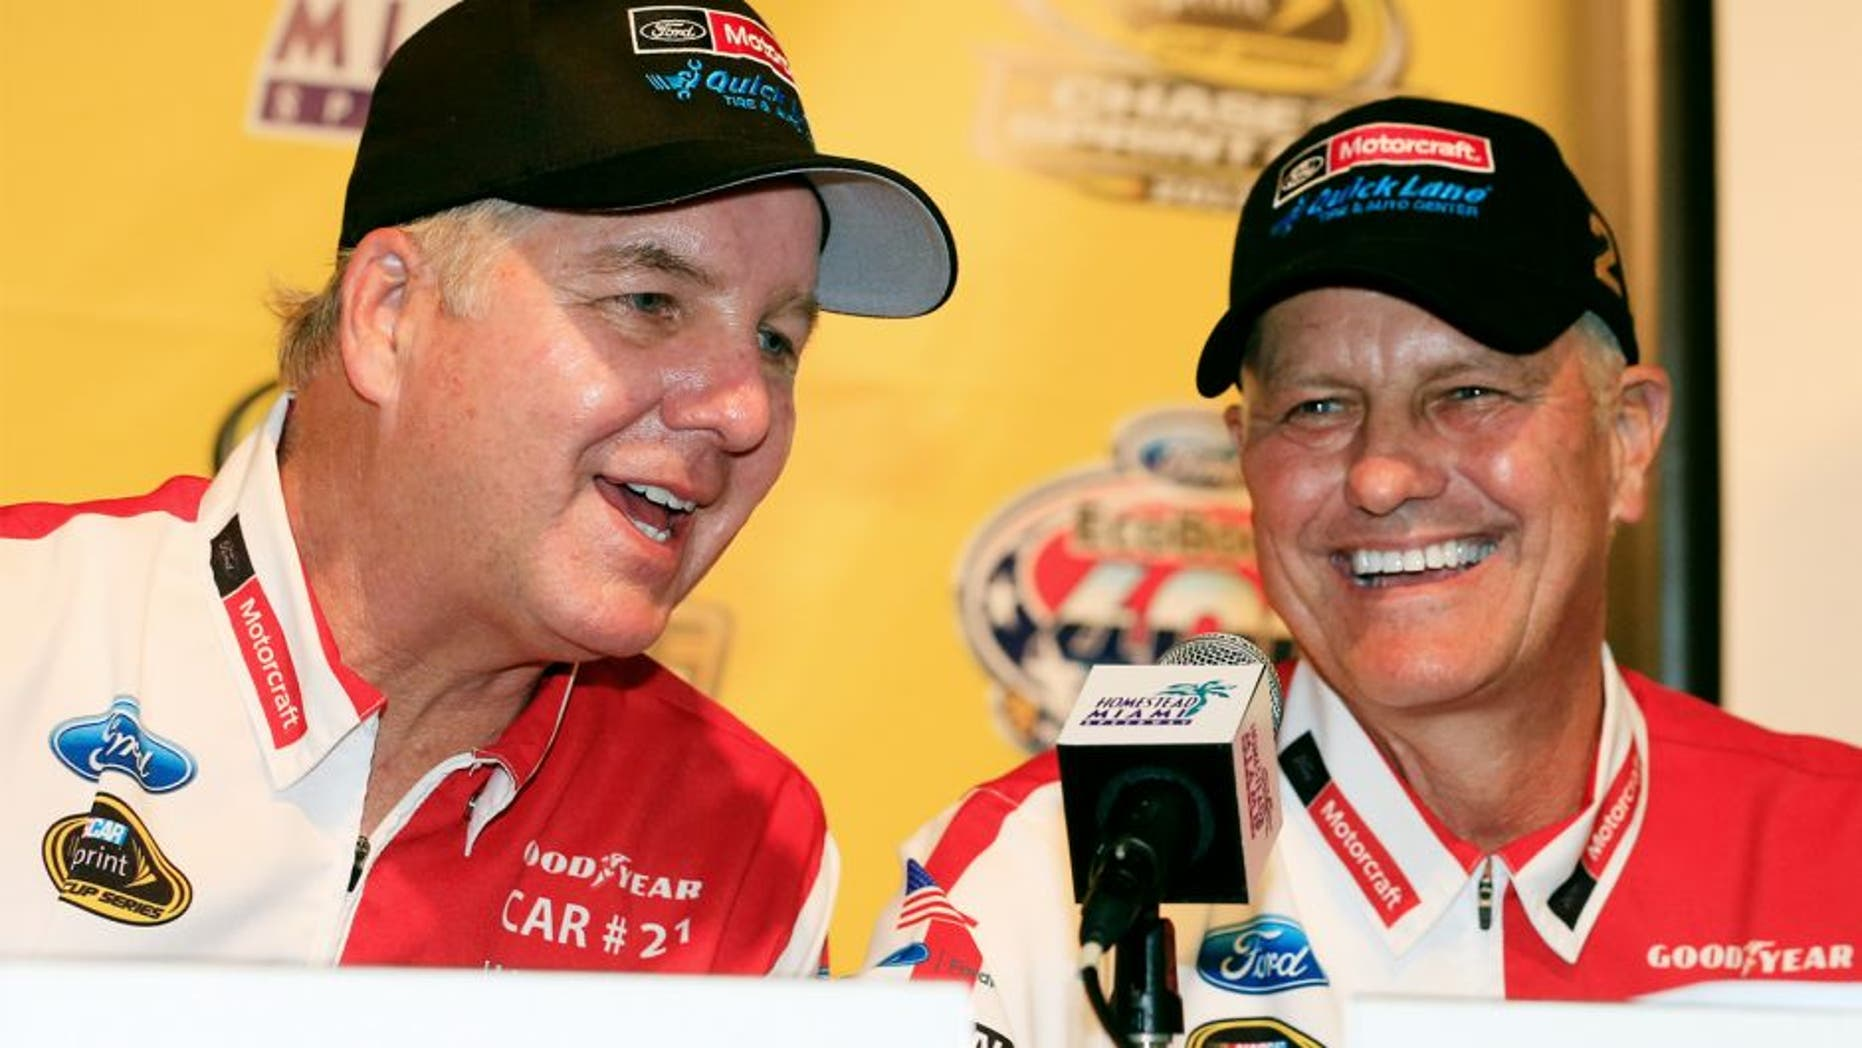 HOMESTEAD, FL - NOVEMBER 20: Len and Eddie Wood attend a press conference at Homestead-Miami Speedway on November 20, 2015 in Homestead, Florida. (Photo by Chris Trotman/NASCAR via Getty Images)